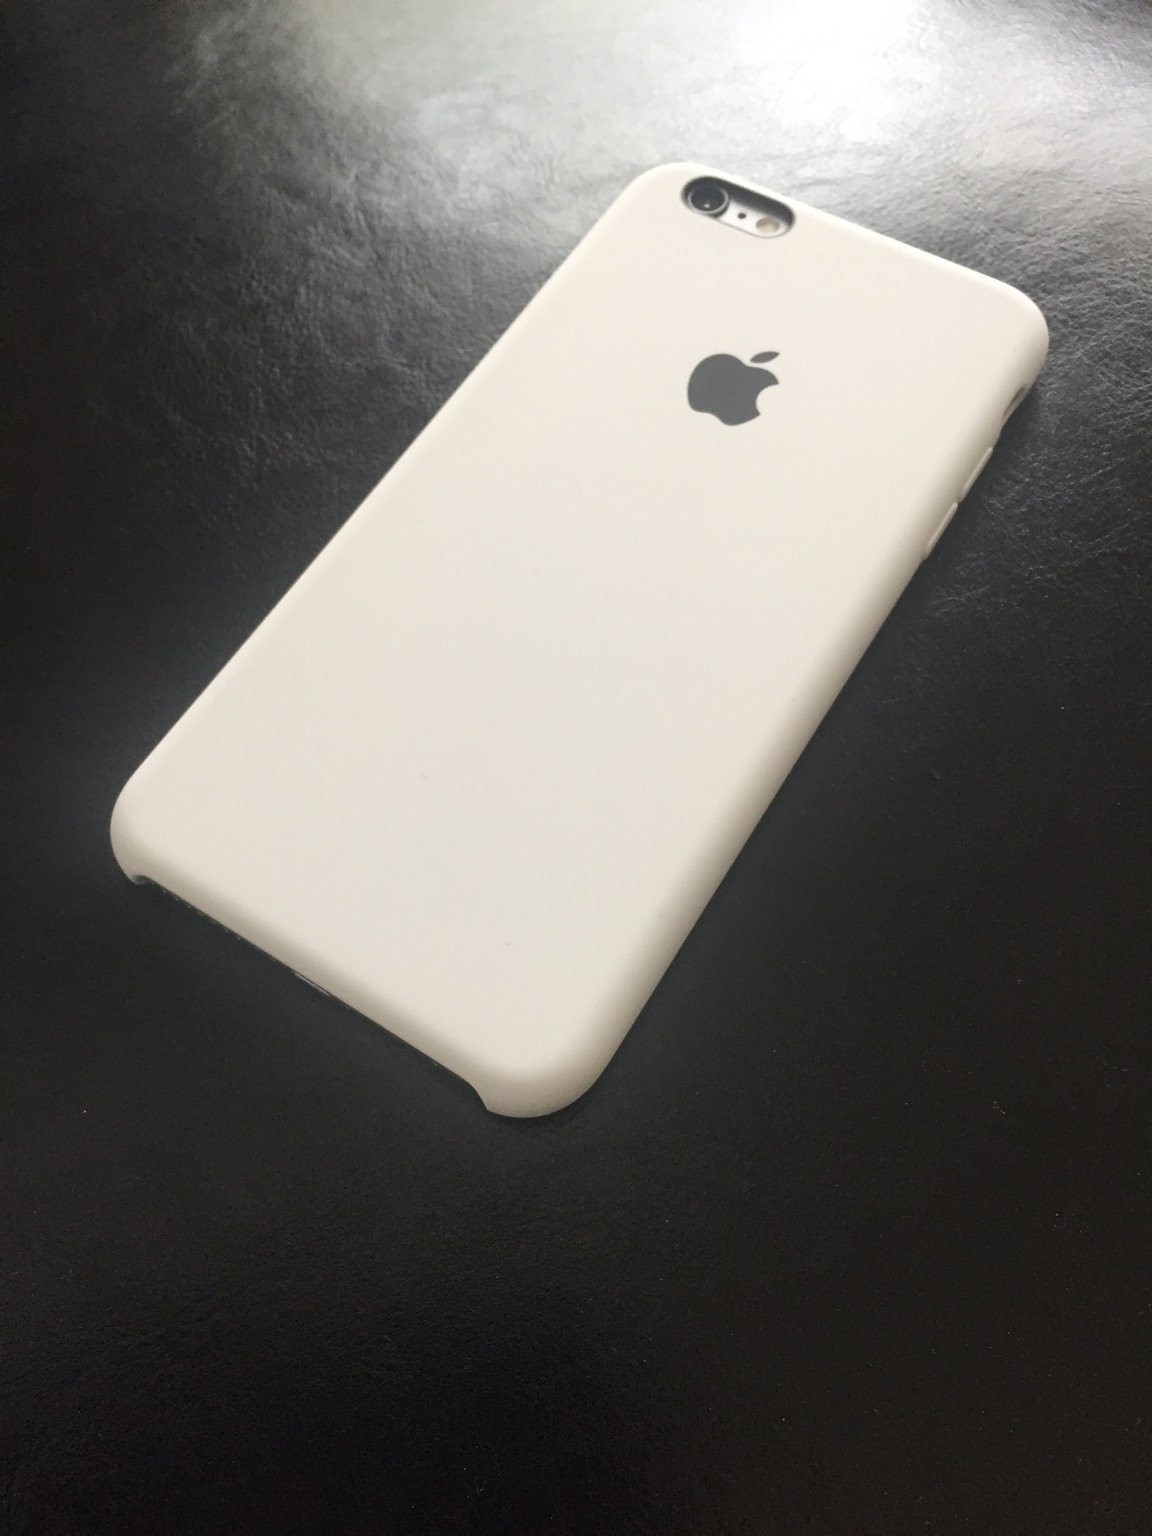 iPhone 6S silicone case - Page 5 - iPhone, iPad, iPod Forums